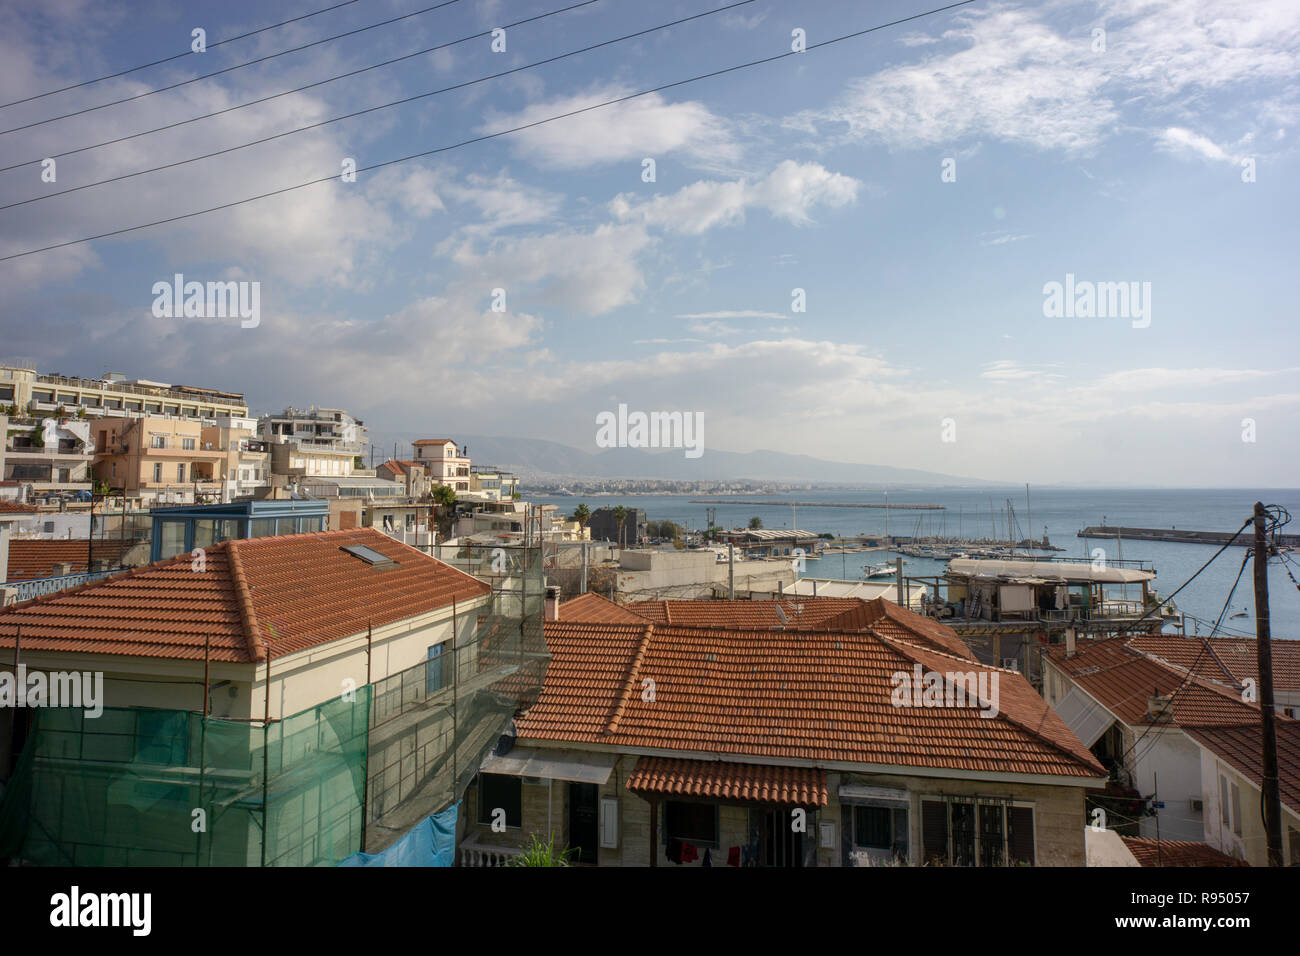 I stayed at Piraeus while in Athens. It was quiet & relaxing during my winter stay & all the liveliness of downtown was only a few metro stops away. - Stock Image